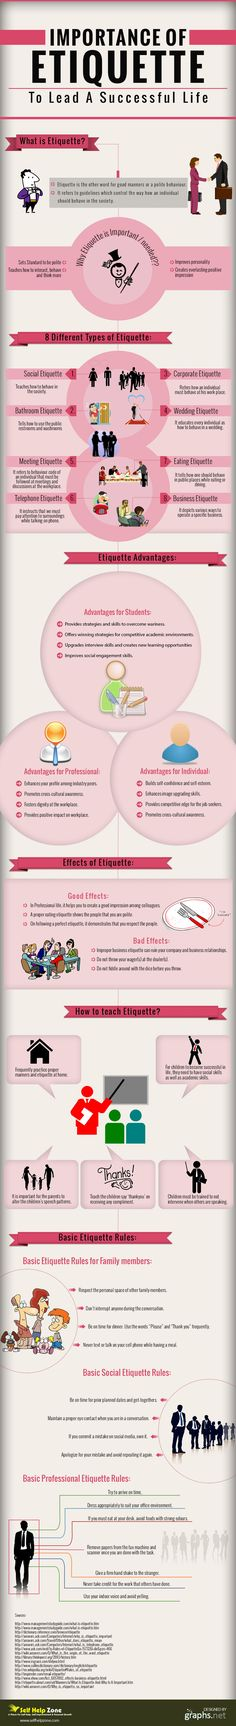 How important is Etiquette in Leading a Quality Lif?